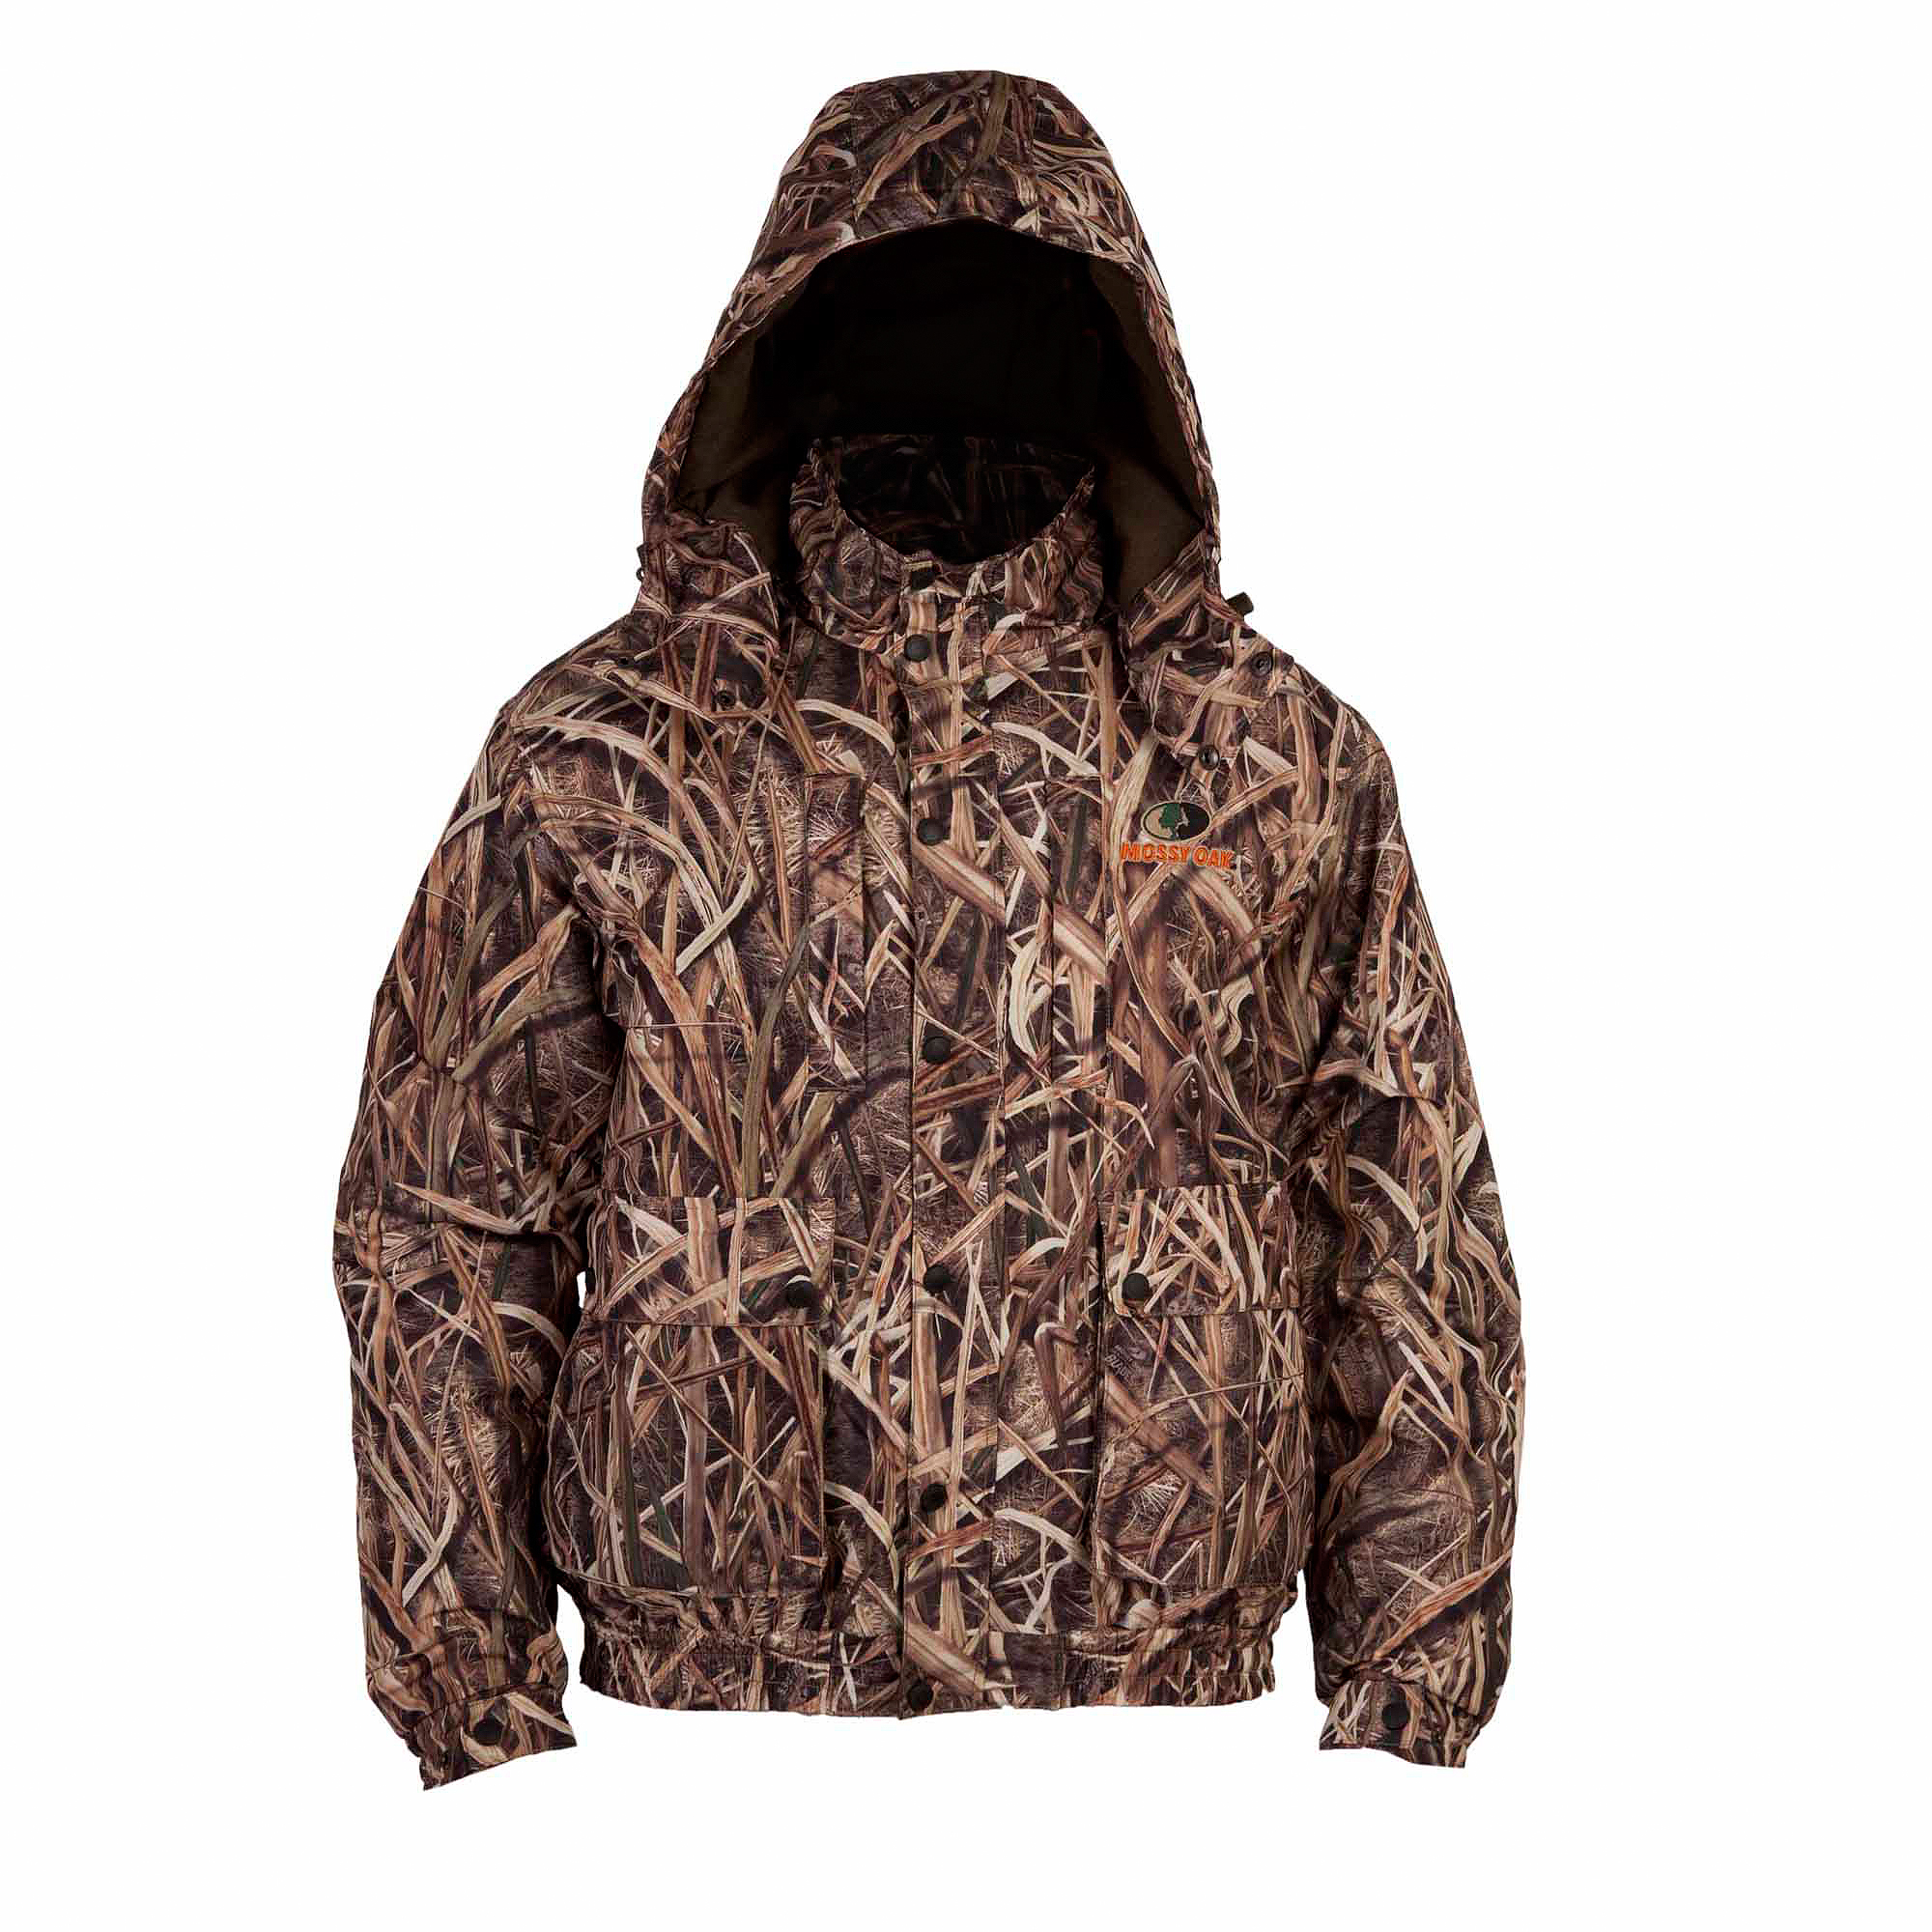 Shadowgrass Blades Men's Waterfowl Insulated Jacket